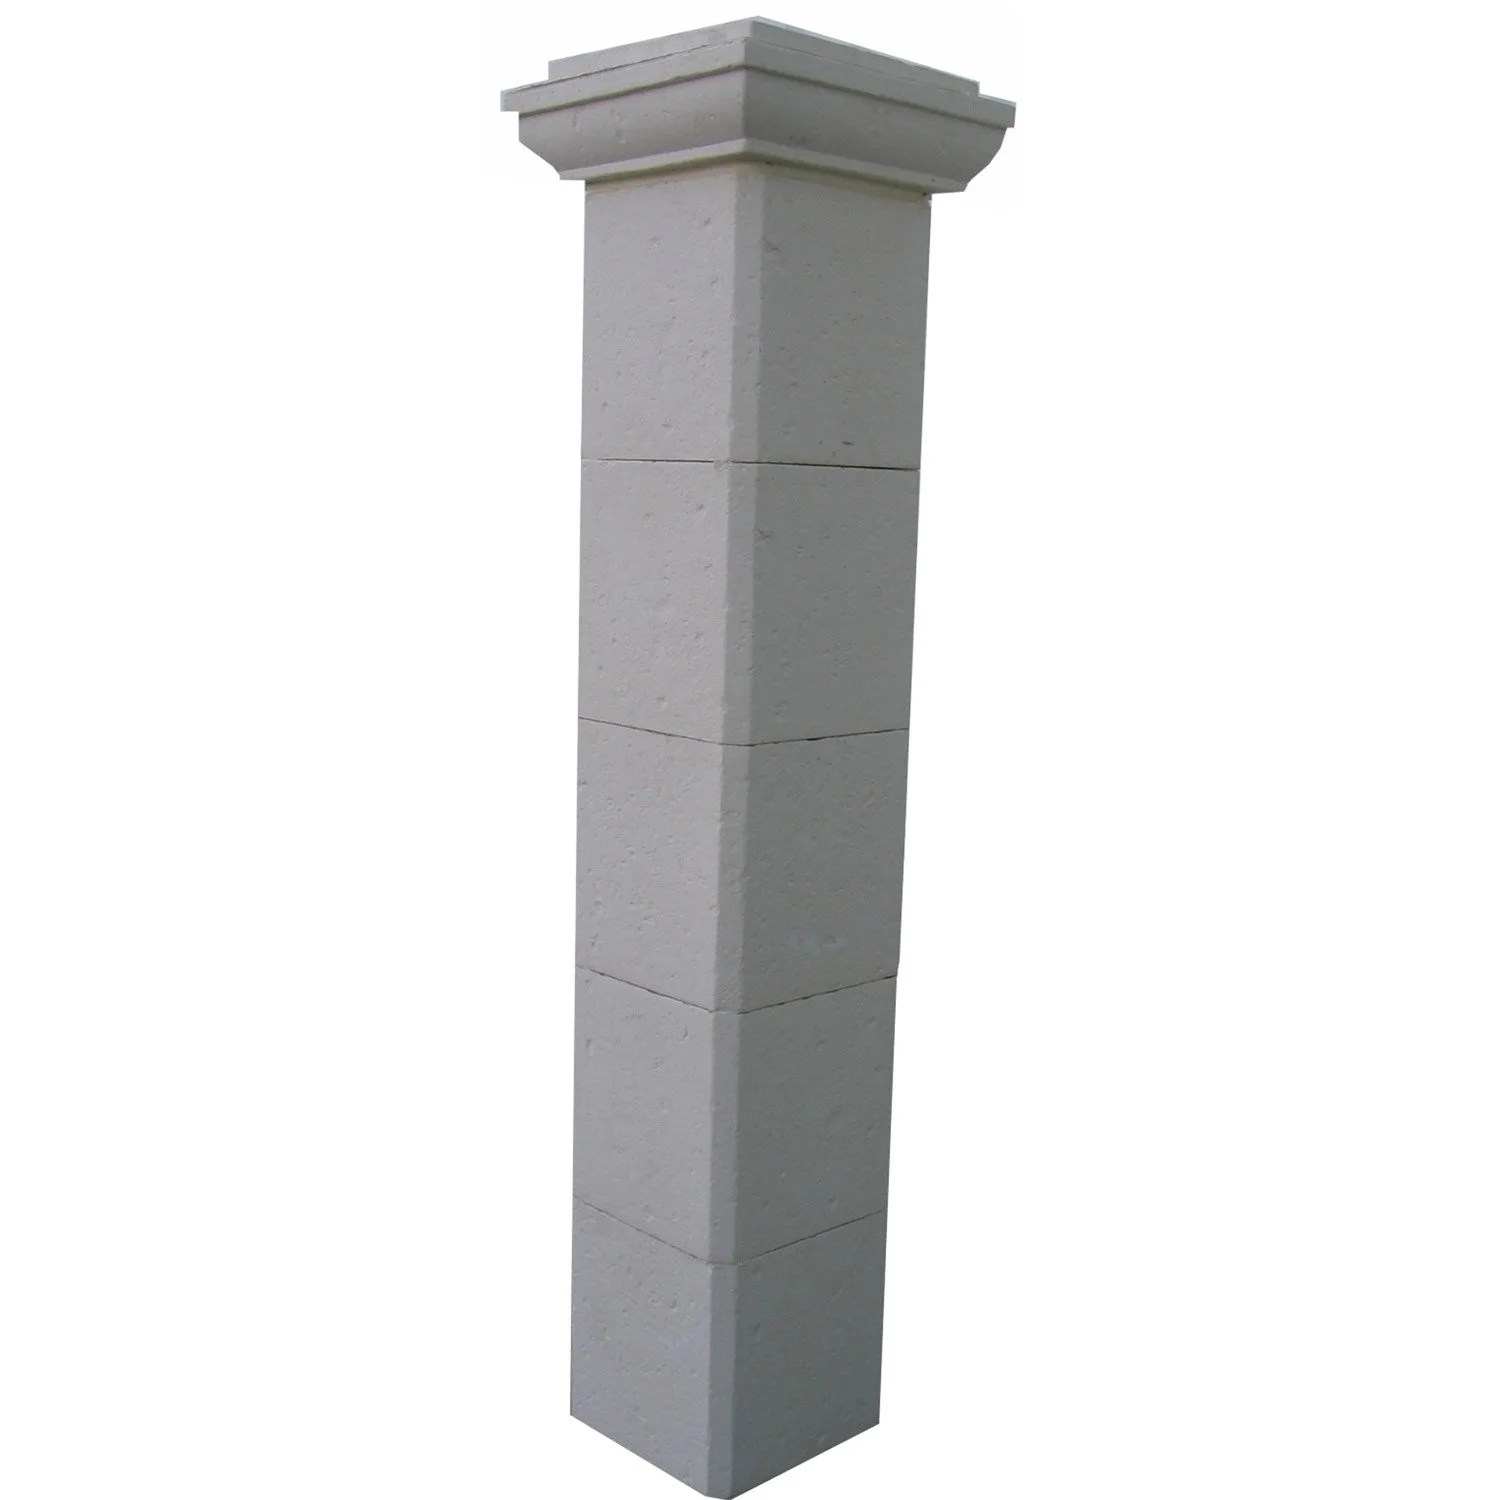 Couvre Mur Plat Gris Anthracite